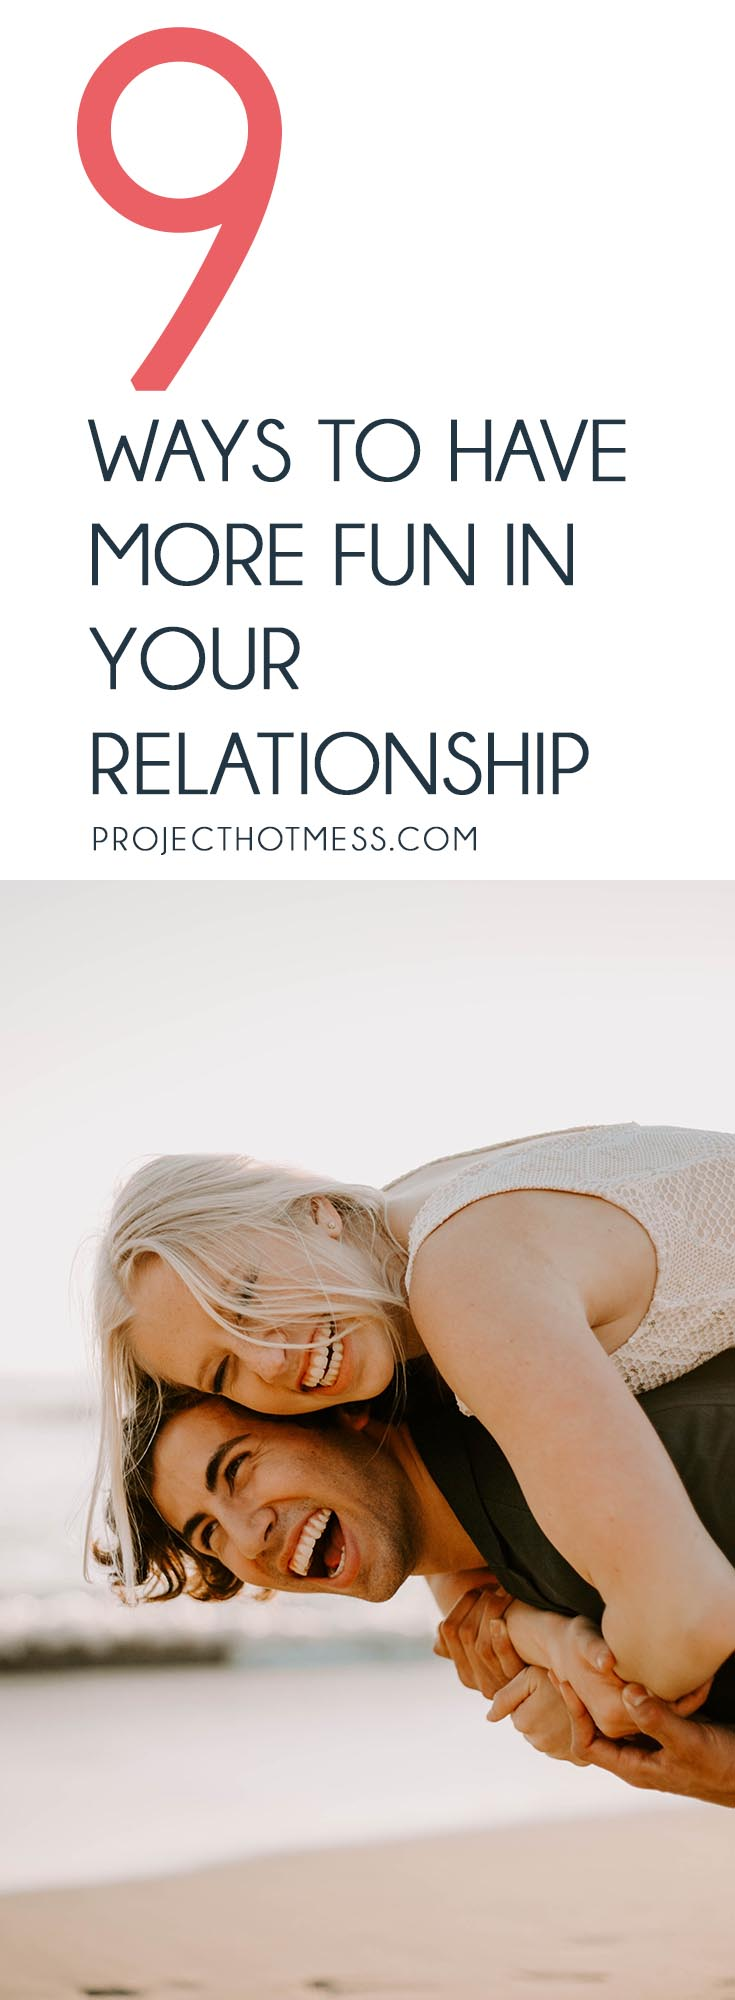 Have you fallen into the rut of takeaway dinners and watching Netflix for your 'date nights'? It doesn't have to be like that! You don't have to be the 'boring couple'. You can have more fun in your relationship, and here are some great ways to get you started!